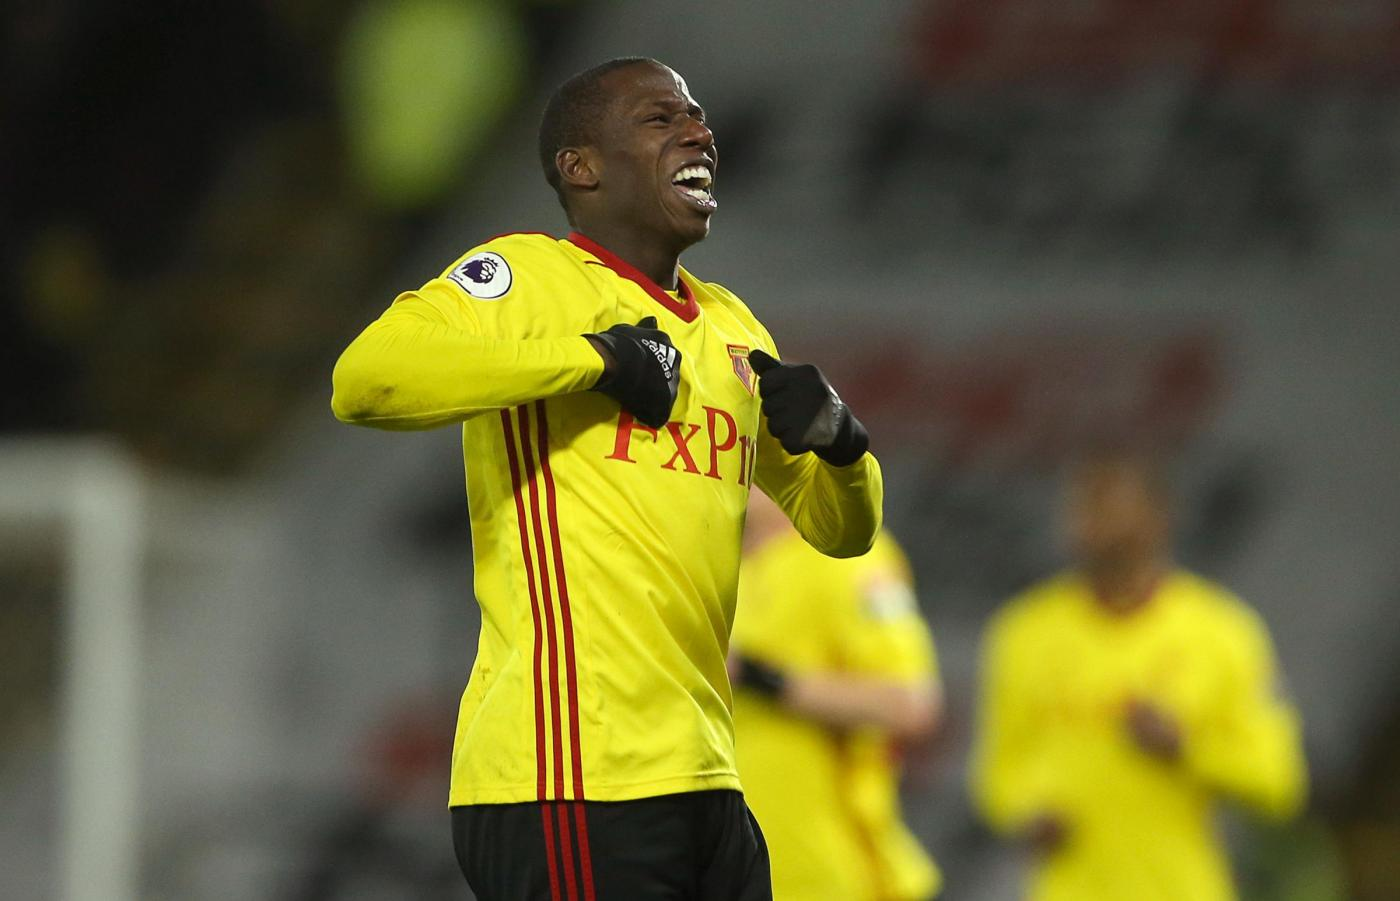 Watford-West Ham 24 agosto: il pronostico di Premier League